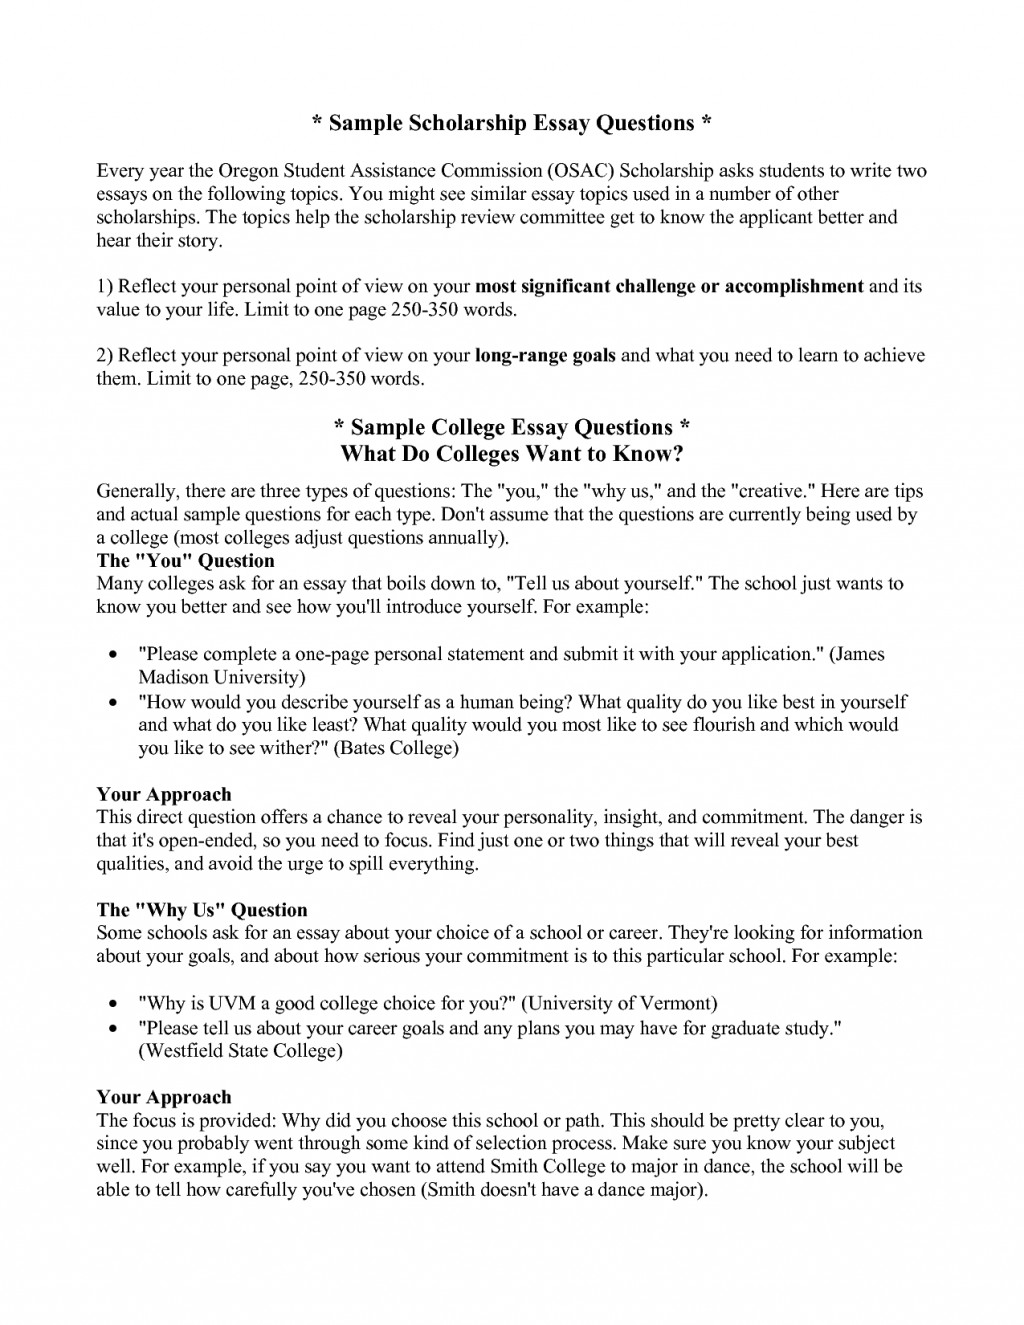 008 Essay Example What Is An Question Critical Thinking In College Management Houston Top Ten Mfa Sample For Your Template Application Questions Frightening Type Modified Large